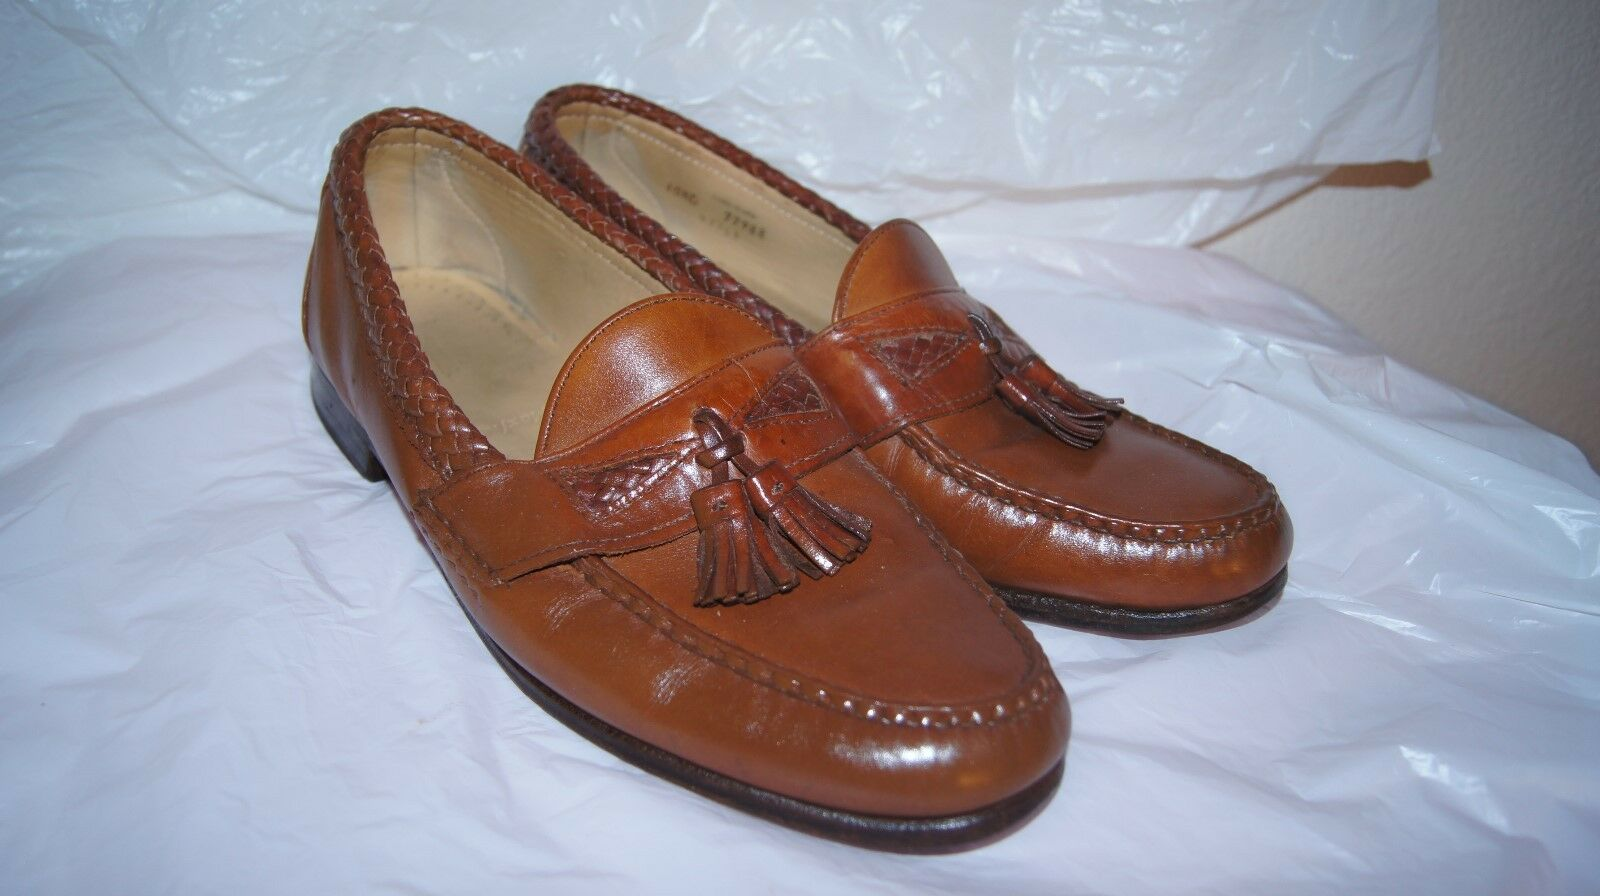 Allen Edmonds SHOES 10.5 D ALLEN EDMONDS LOAFERS 10.5 D ALLEN EDMONDS MAXFIELD Scarpe classiche da uomo